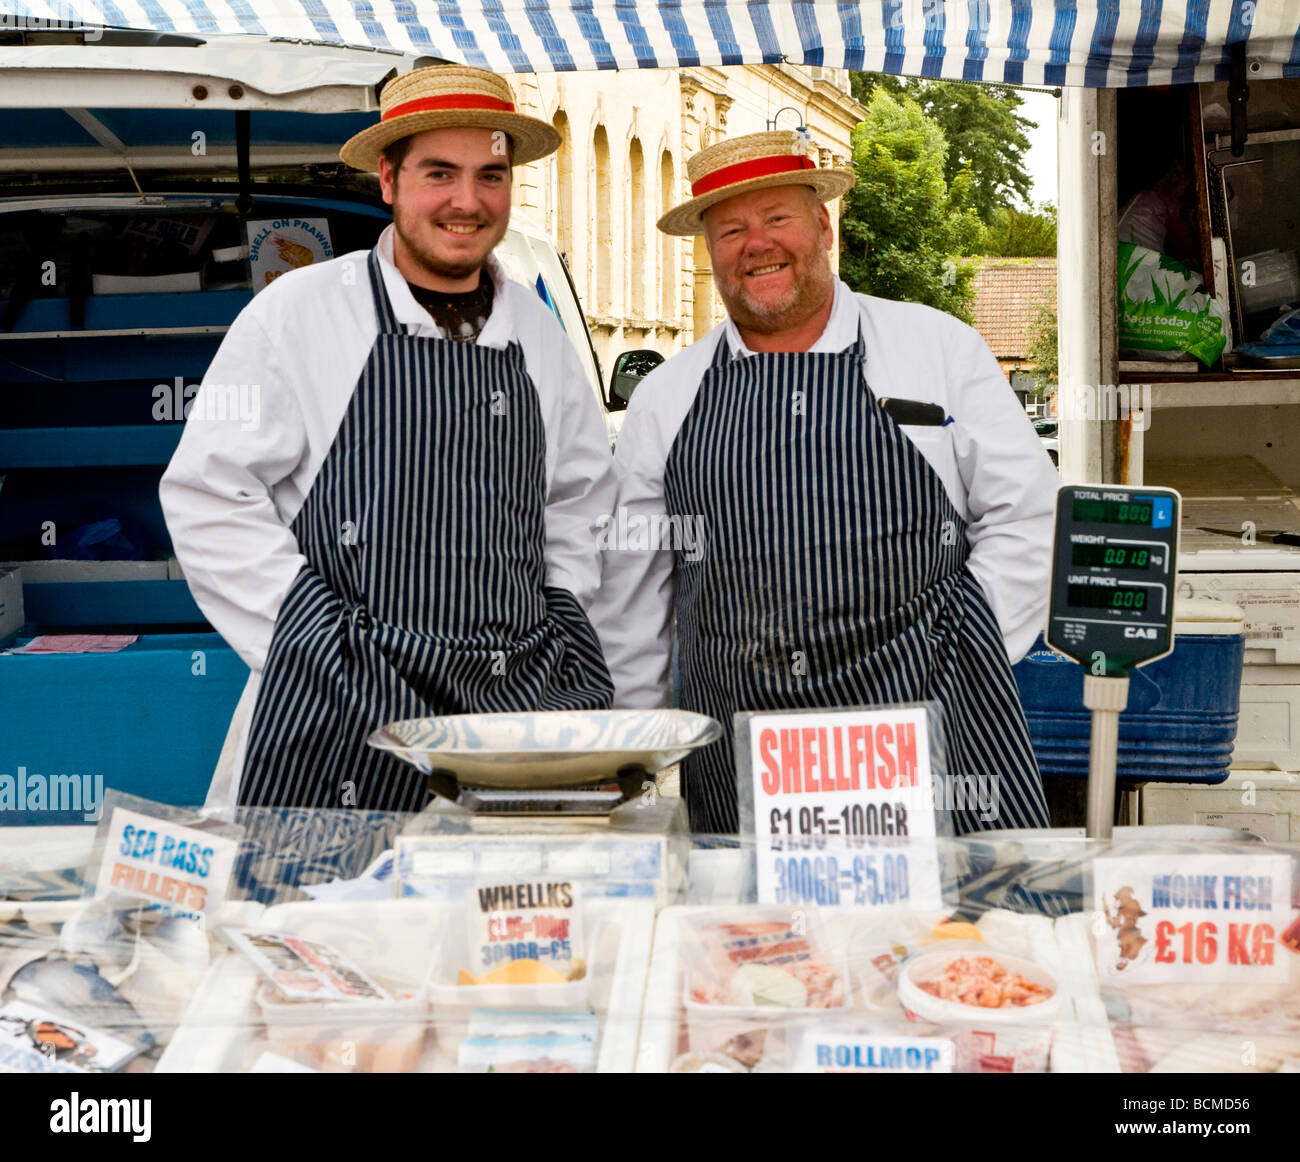 Fishmongers at the Thursday famer s market in the typical English market town of Devizes Wiltshire England UK - Stock Image